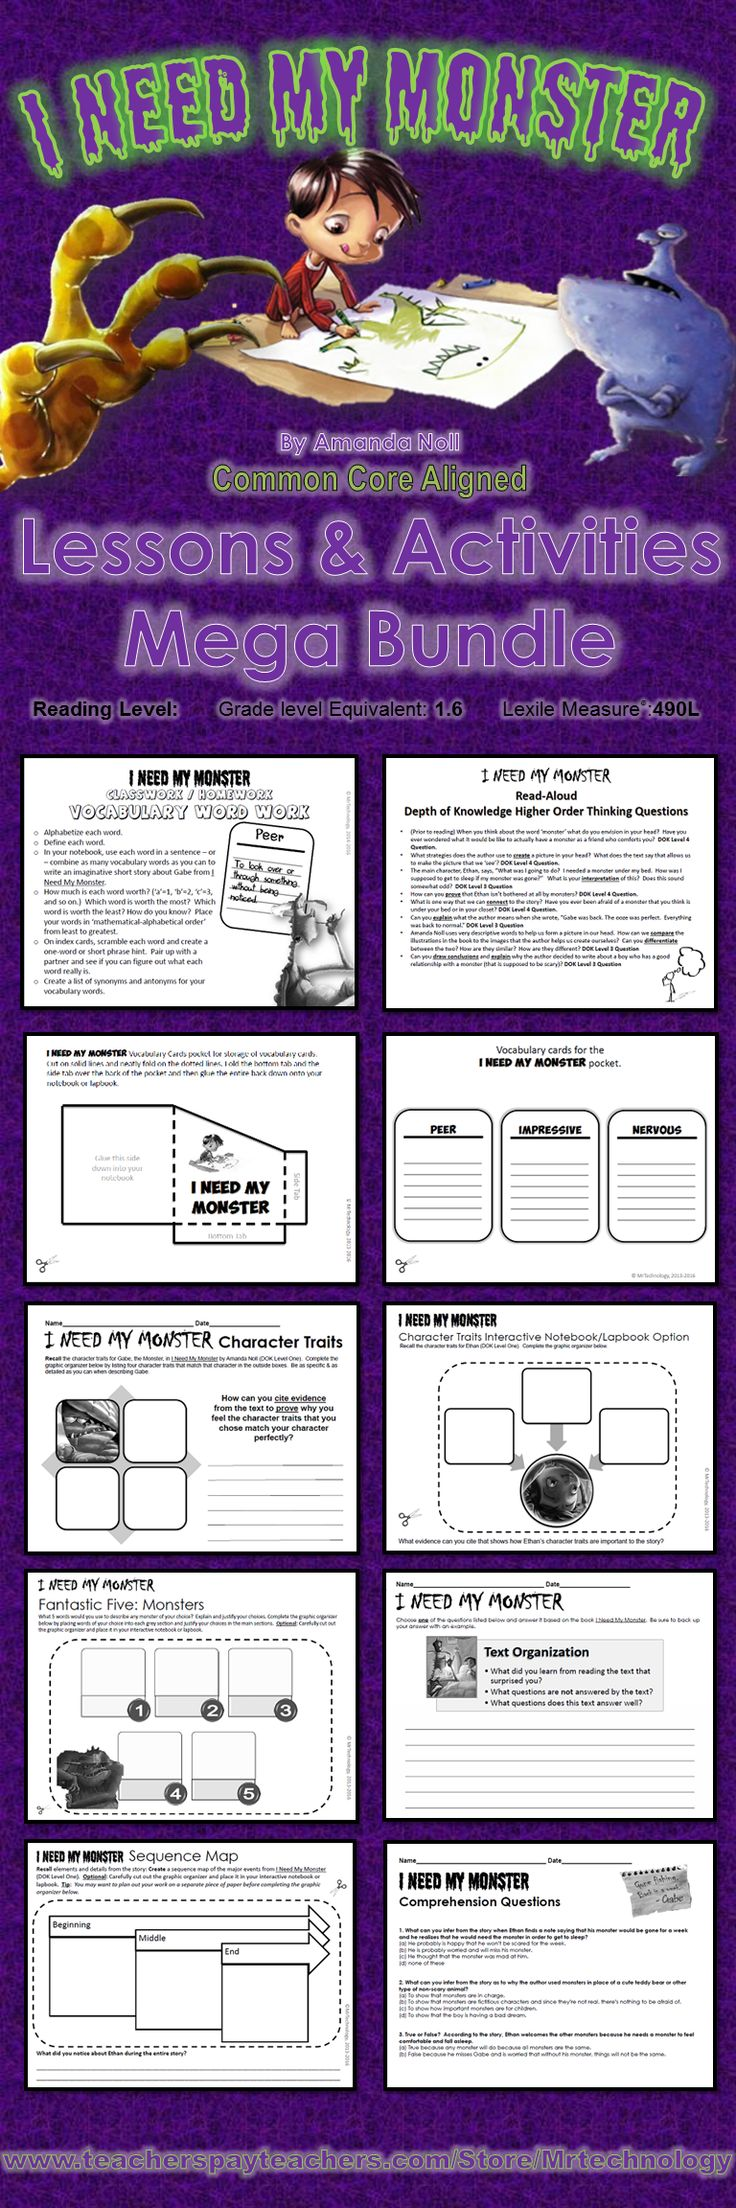 I Need My Monster Reading Lessons & Activities Bundle {CCSS Aligned} on #TeachersPayTeachers